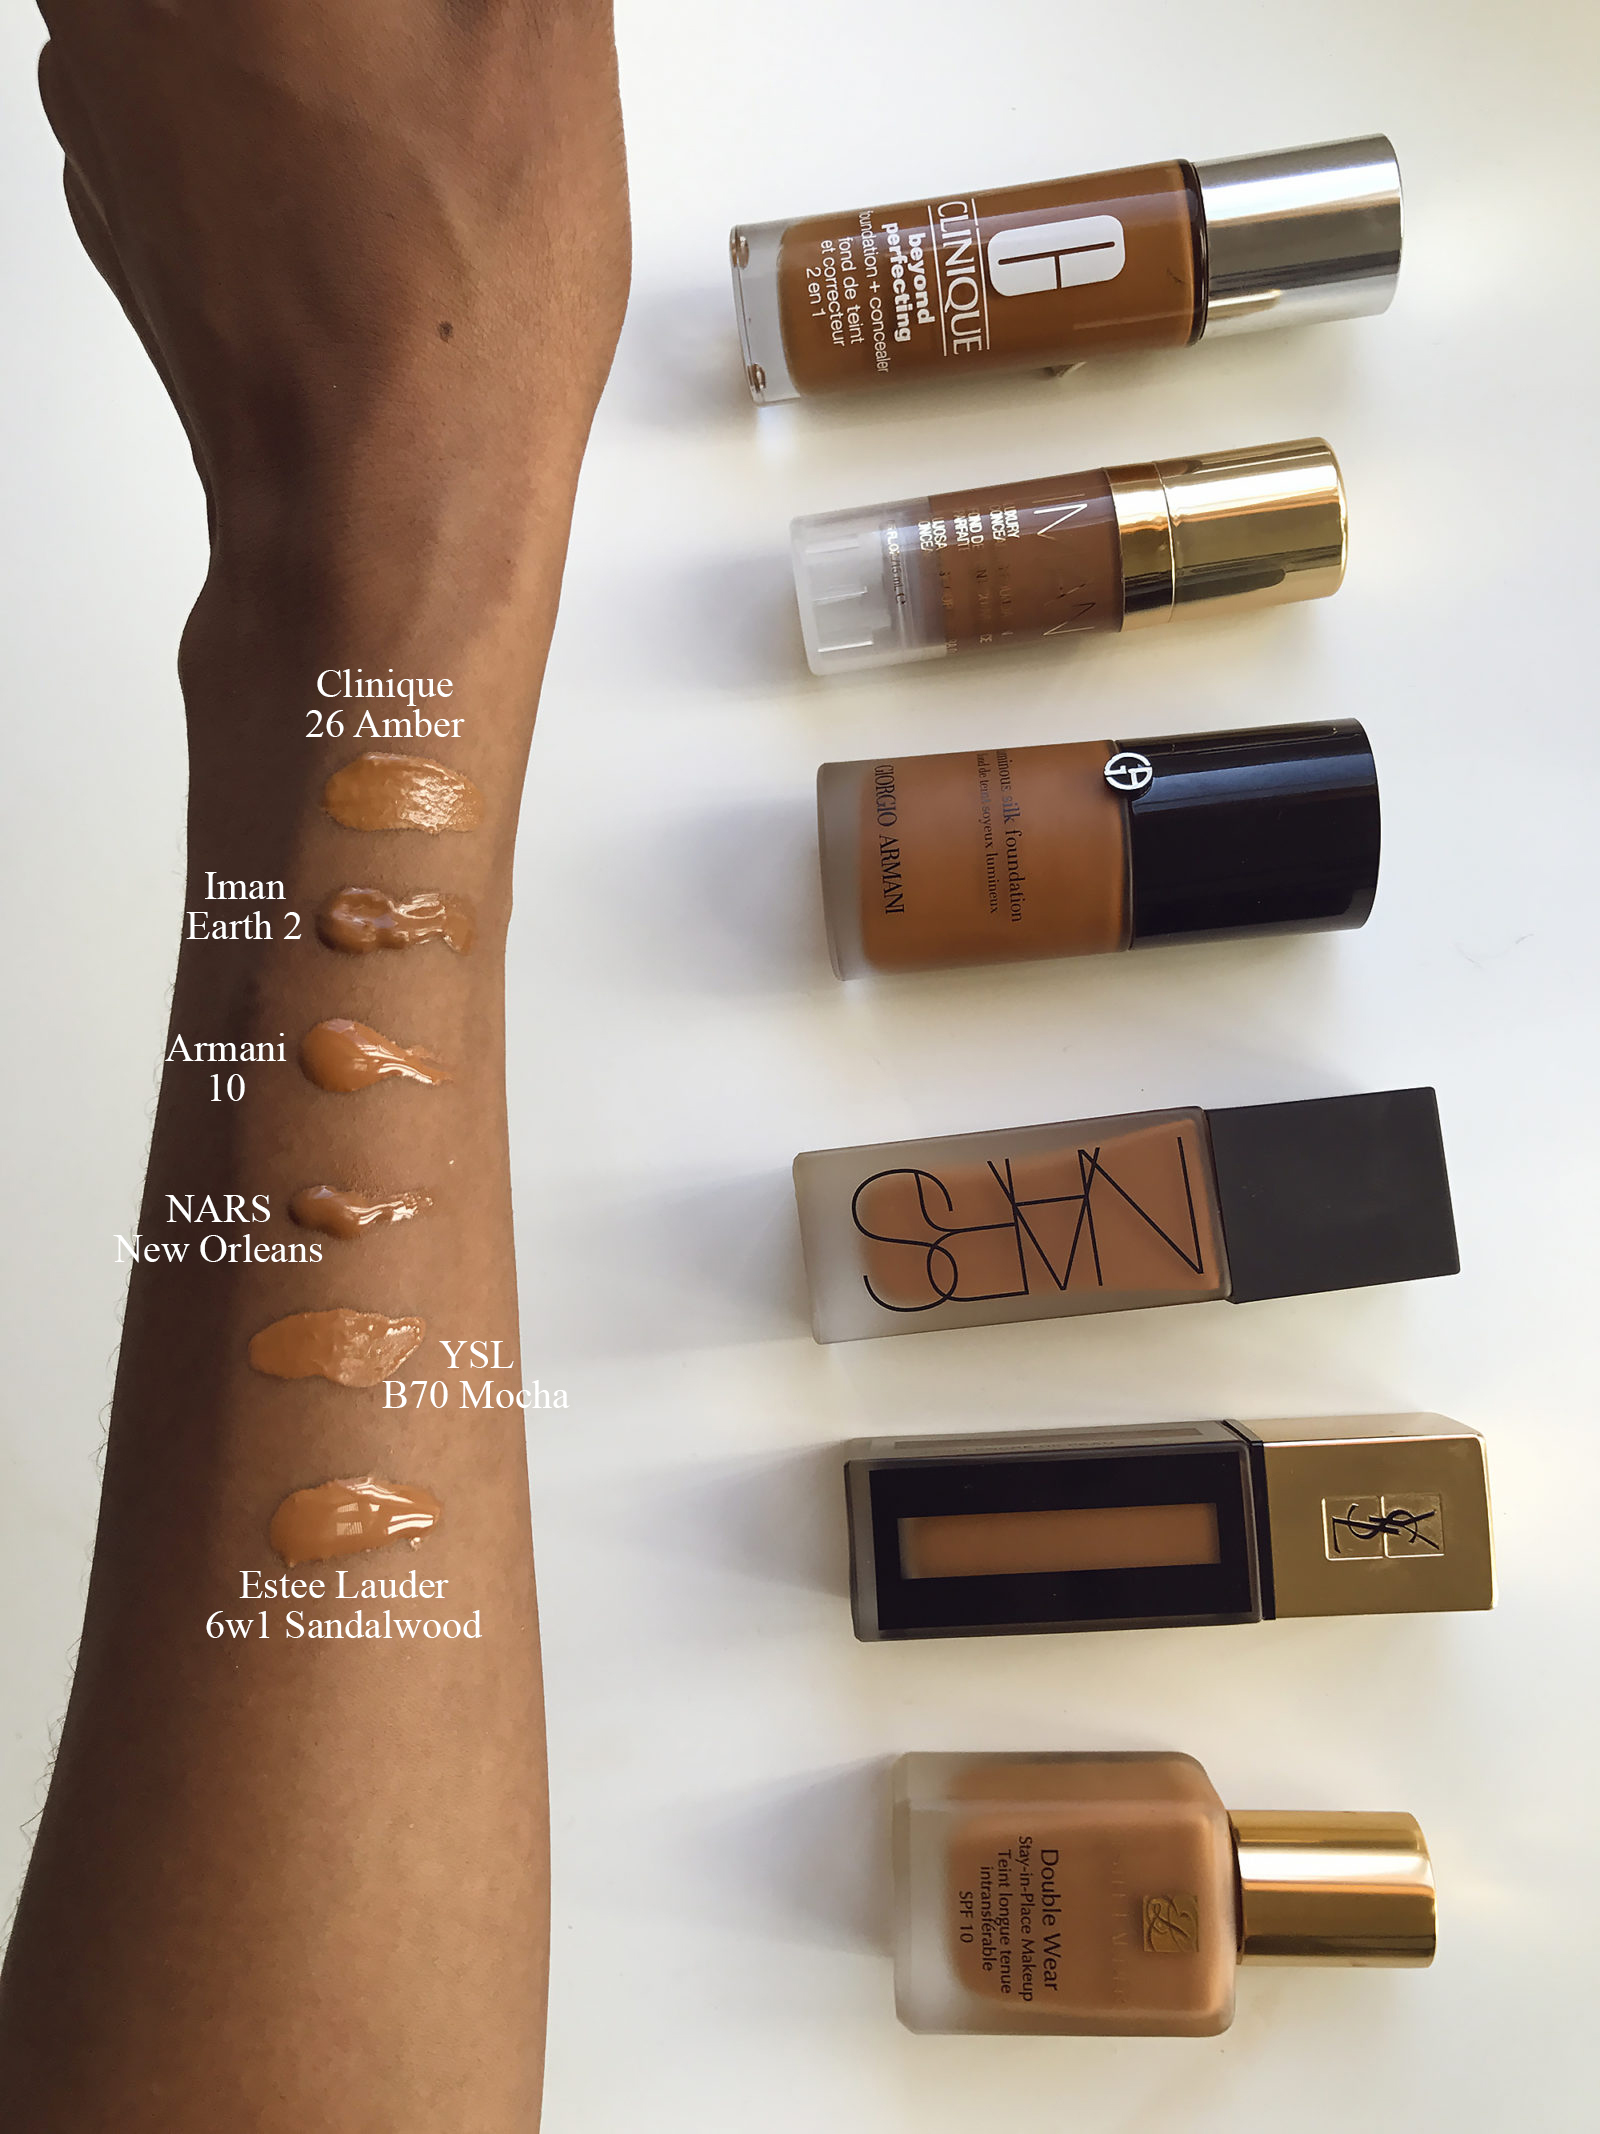 Magic Foundation Charlotte Tilbury Reviews: Estee Lauder 6W1 Double Wear Stay-in-Place Foundation